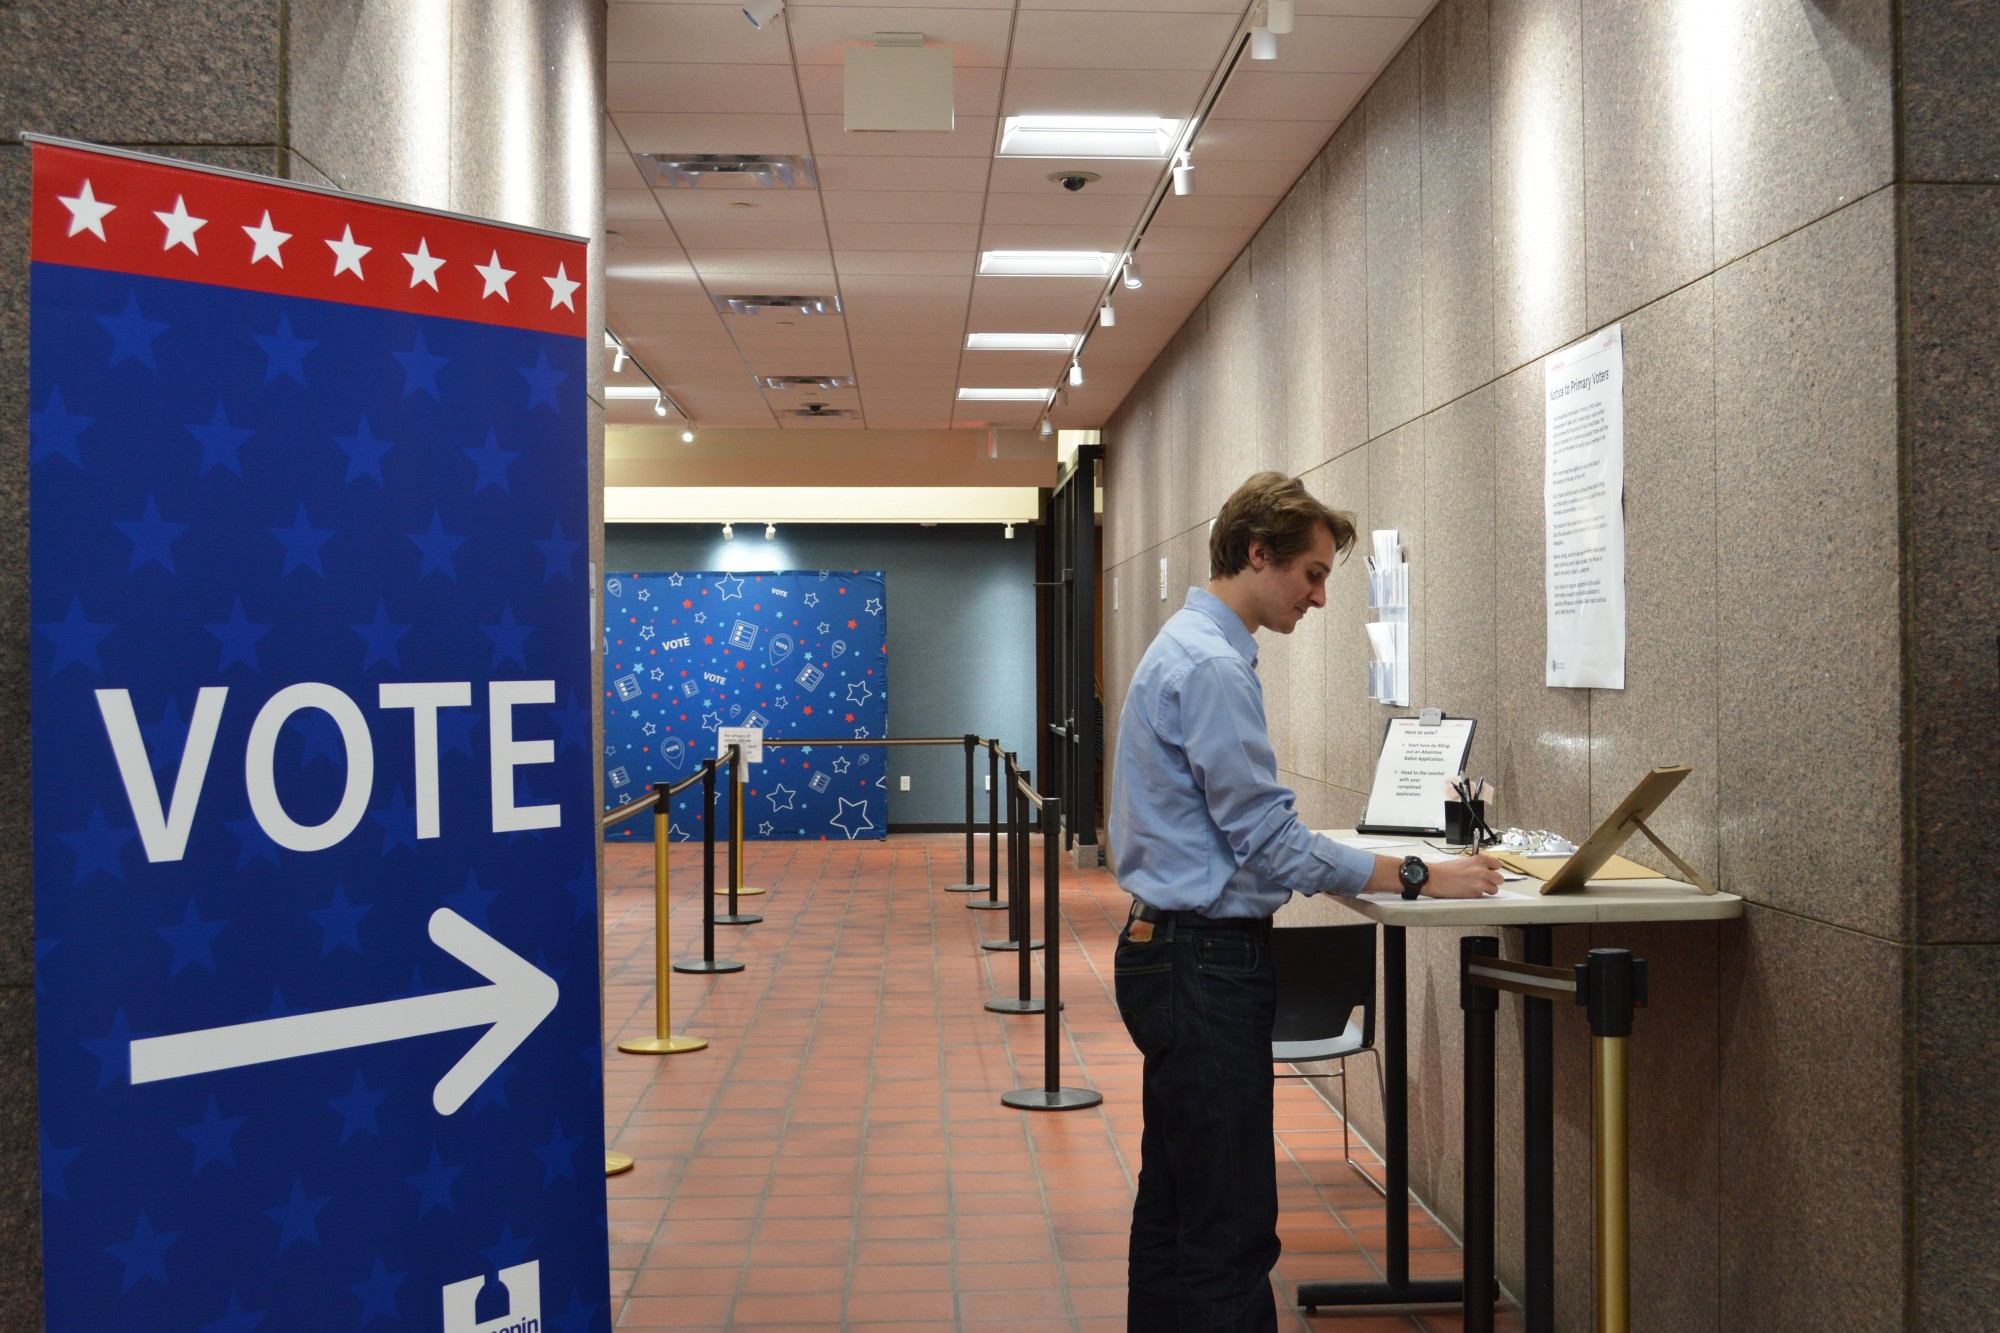 Senior Sammy Lett reviews an early voting ballot at the Hennepin County Government Center on Wednesday, Jan. 22.